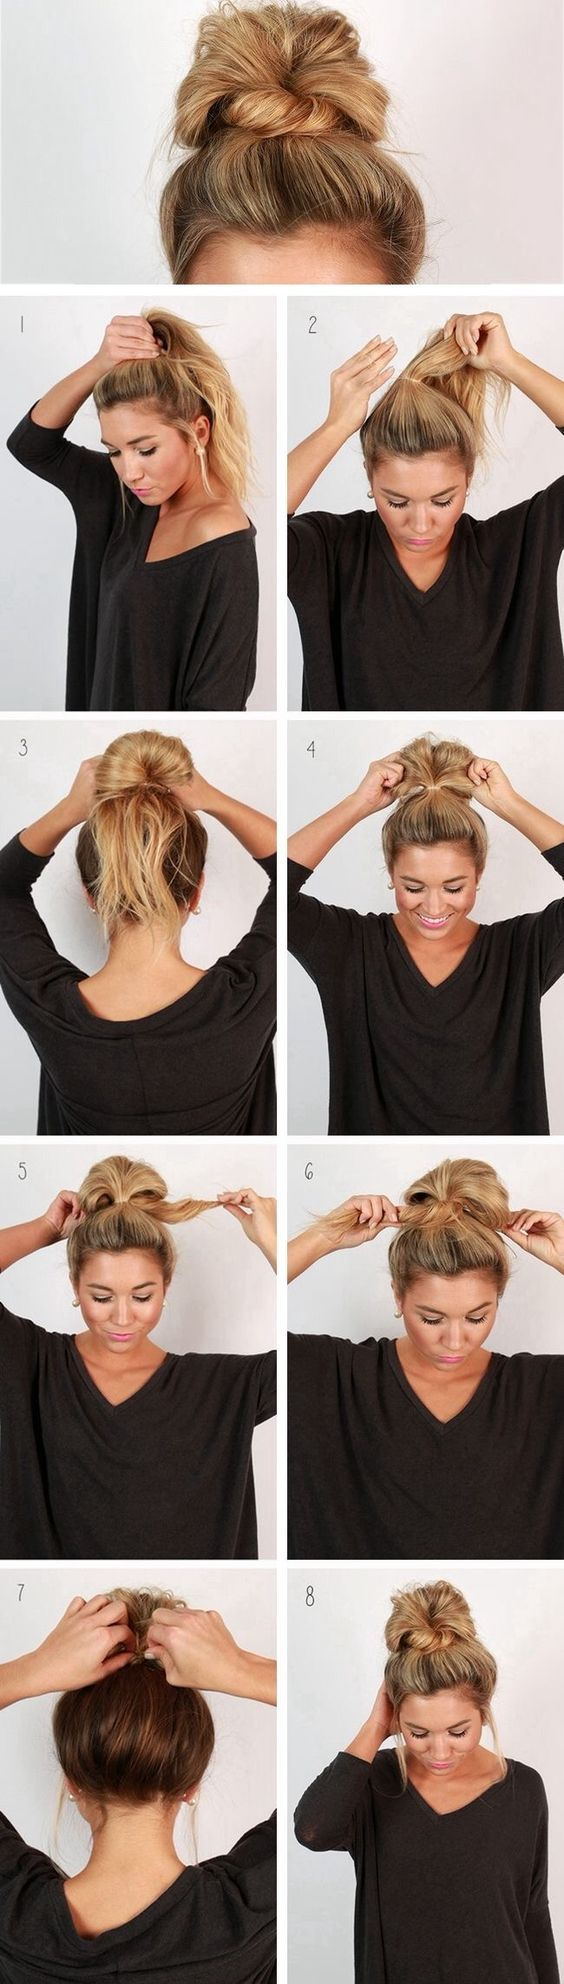 Simple And Easy Hairstyle Tutorials For Daily Look